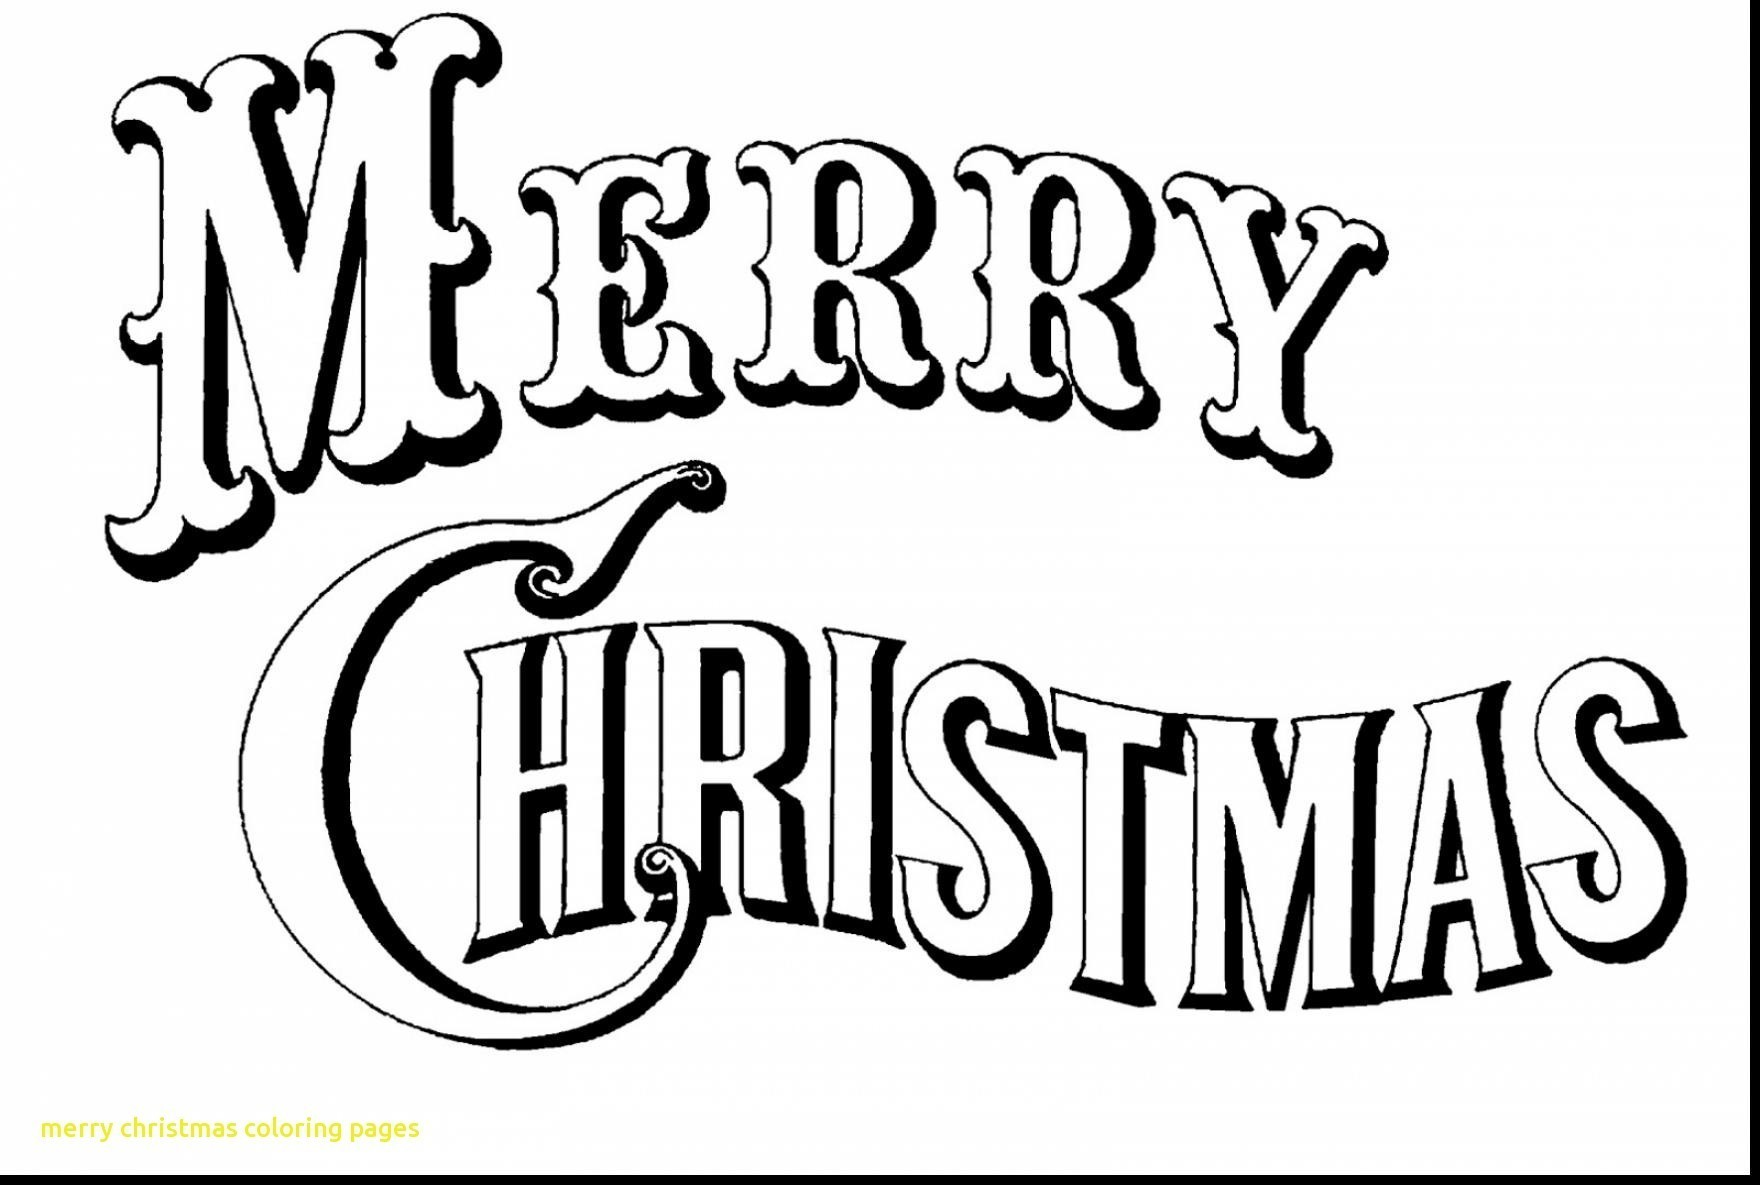 Happy Christmas Coloring Pages With Merry Color Ironenclave Com